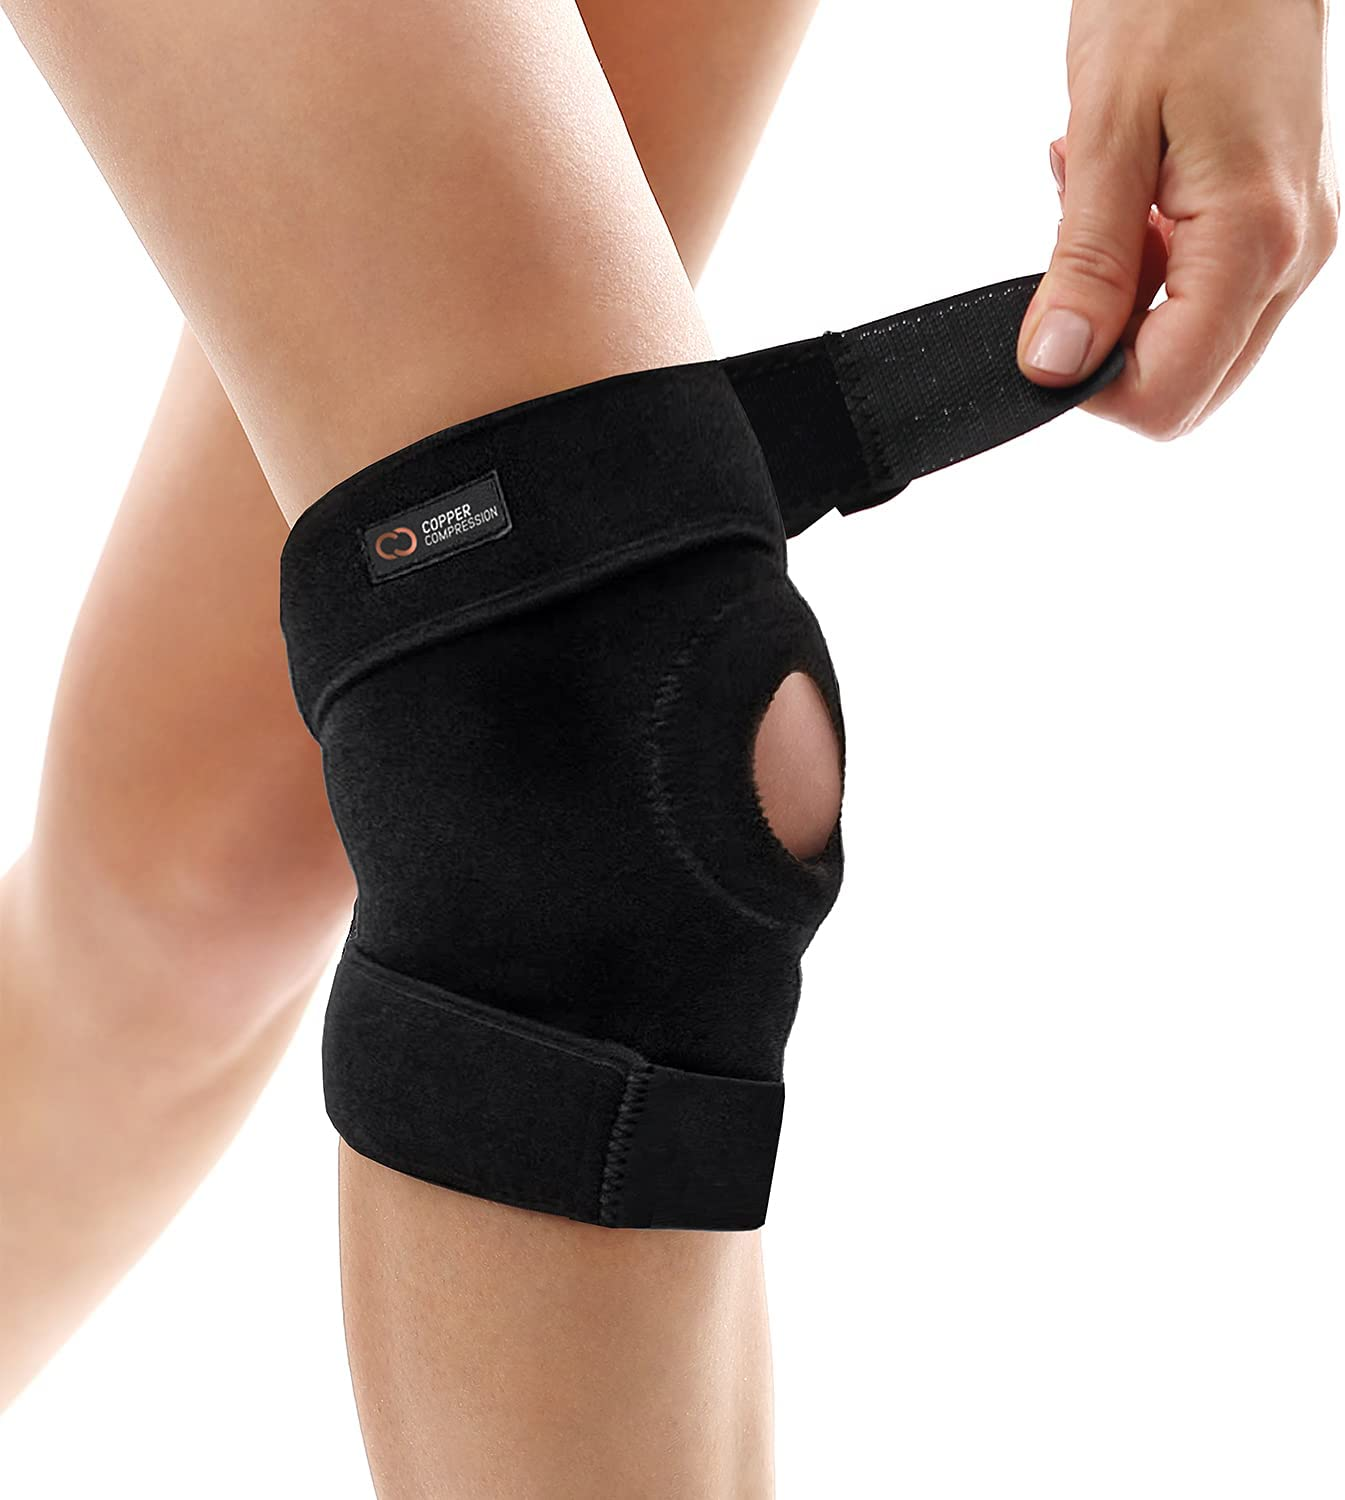 Review of Copper Compression Extra Support Knee Brace